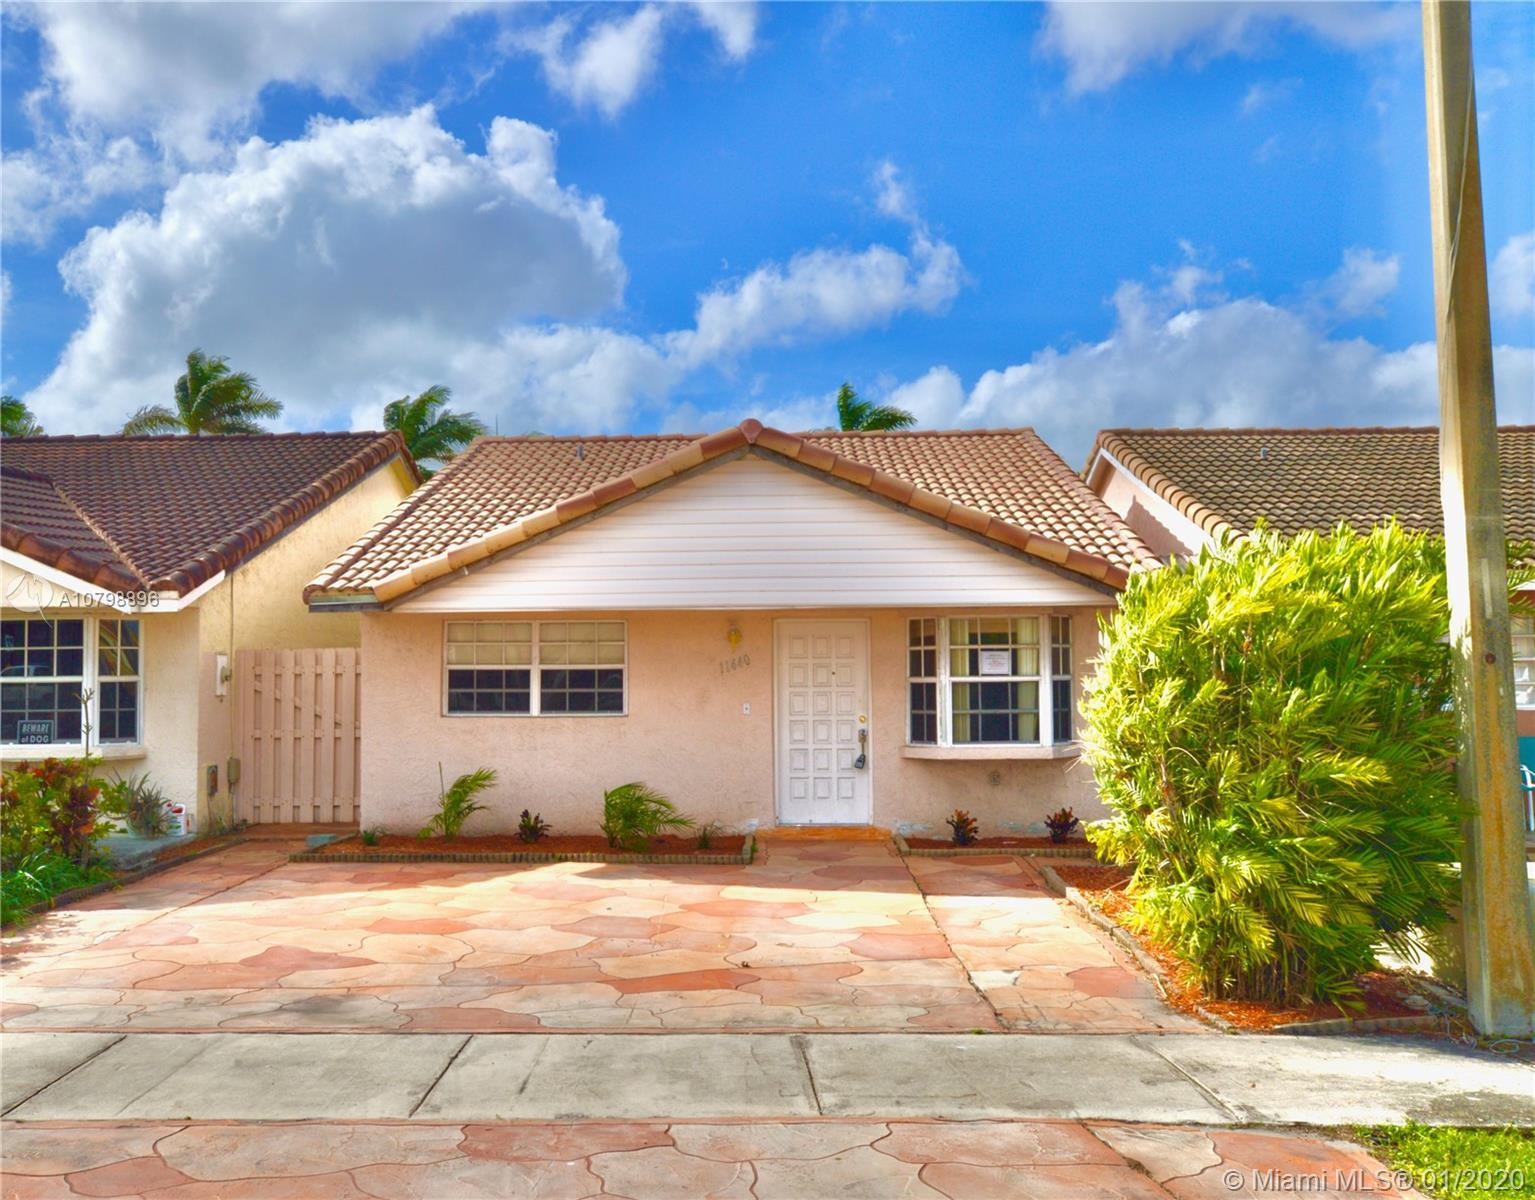 Cozy West Hialeah bedroom, 2 bathroom home. Newer roof, tiled throughout with a covered patio in the